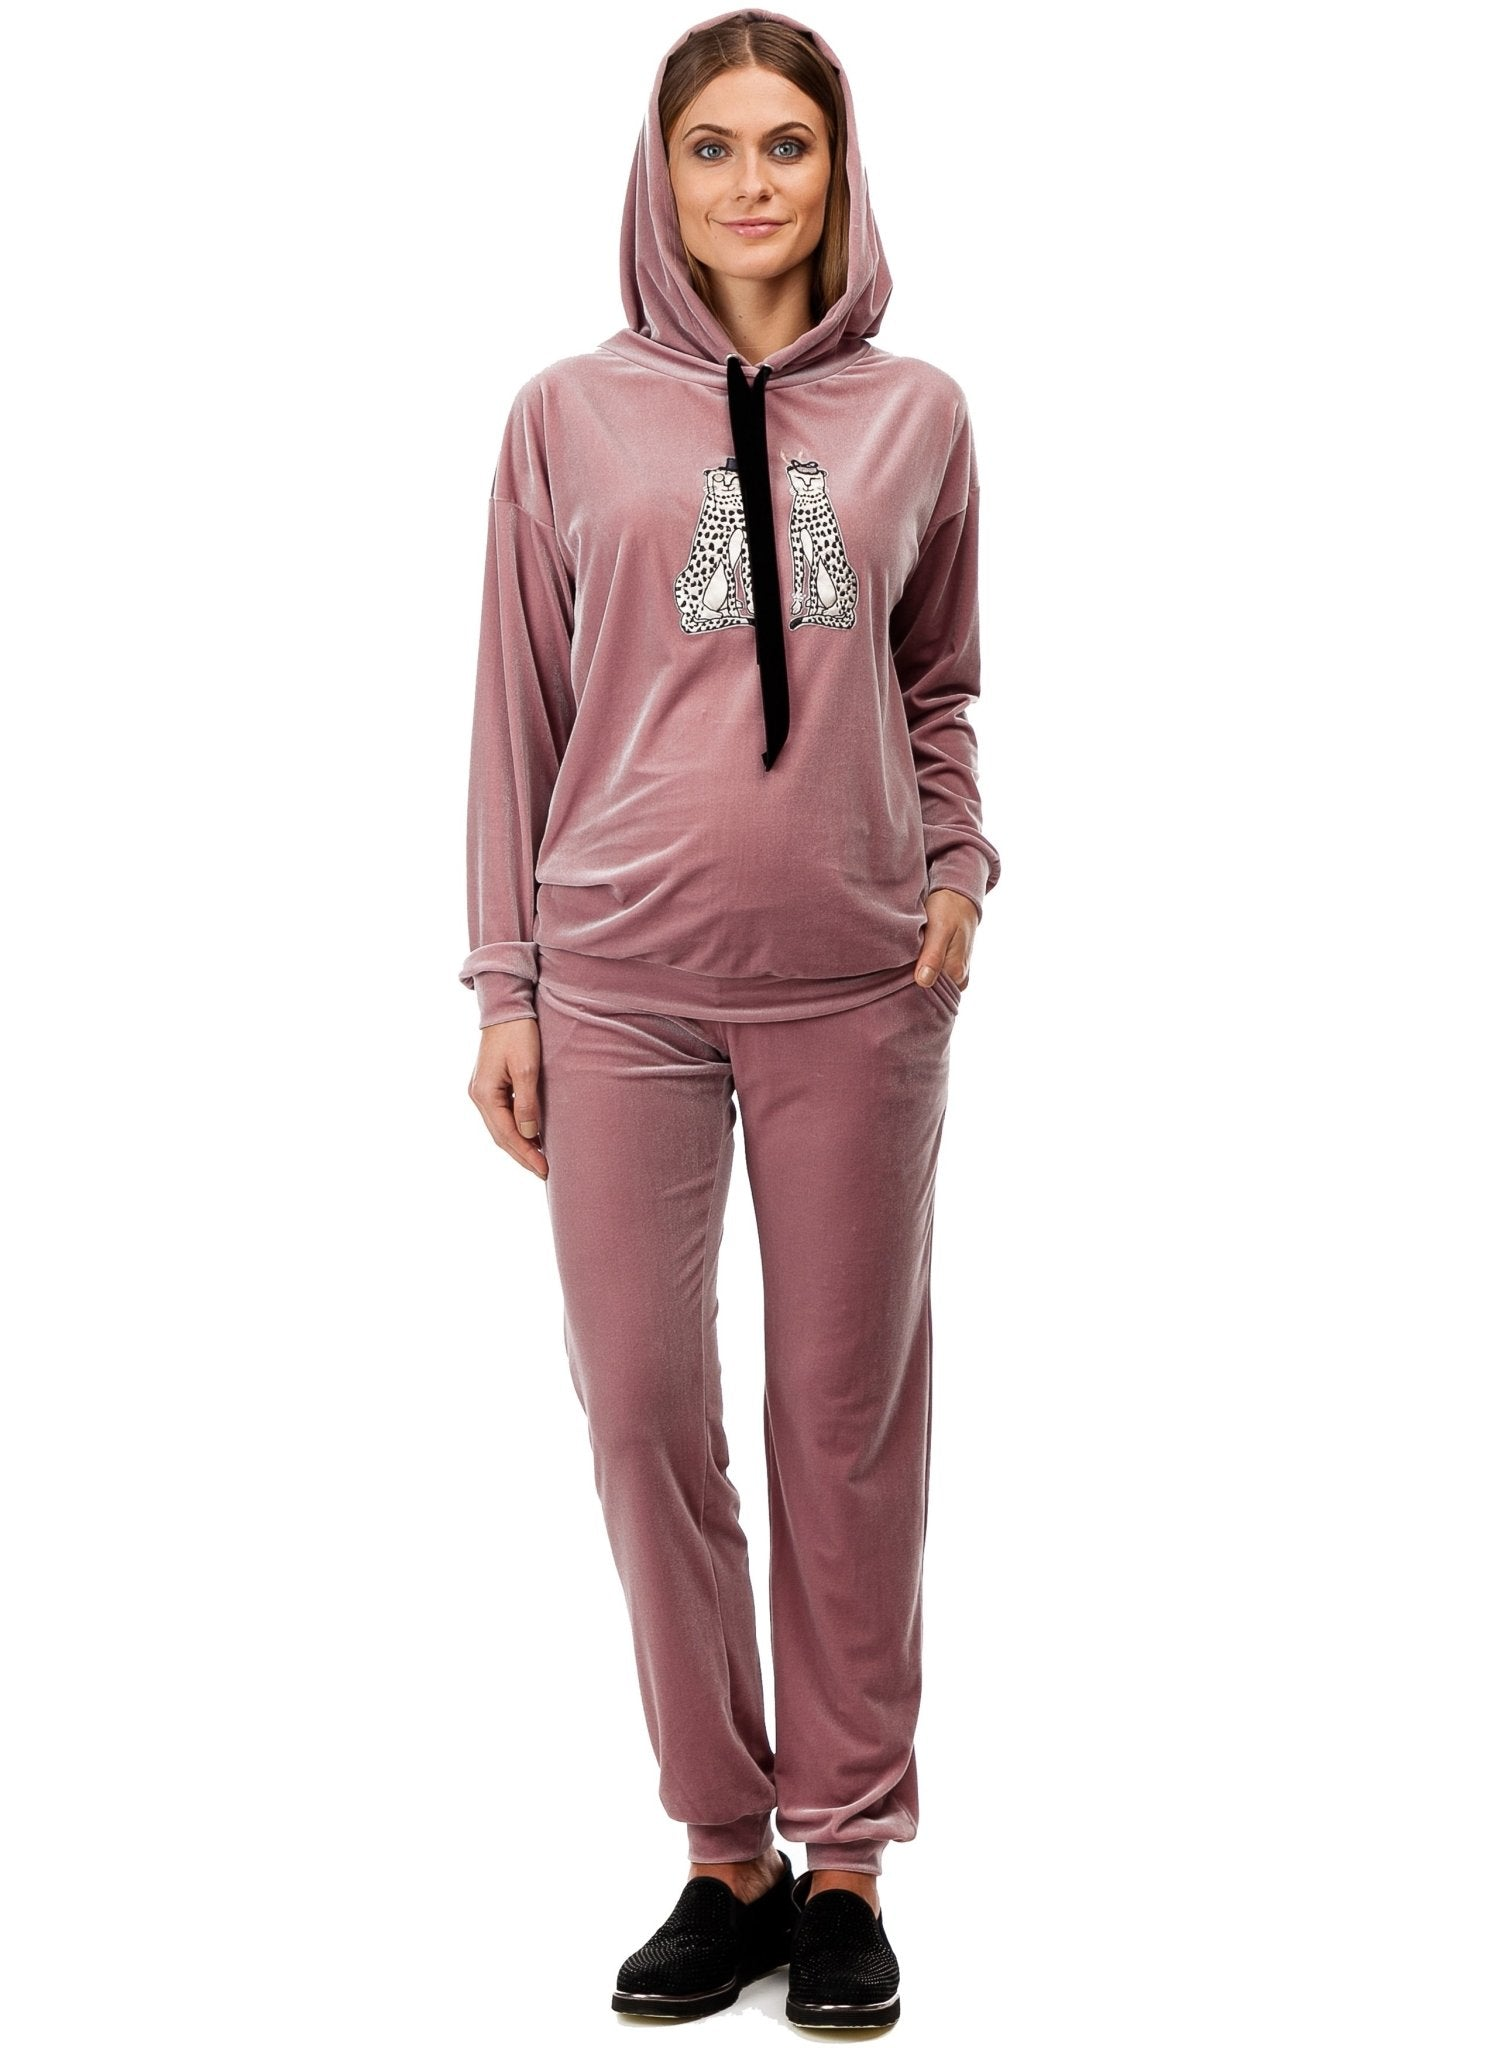 Valentina Maternity Tracksuit (2 Piece Set) - Misty Rose - Mums and Bumps